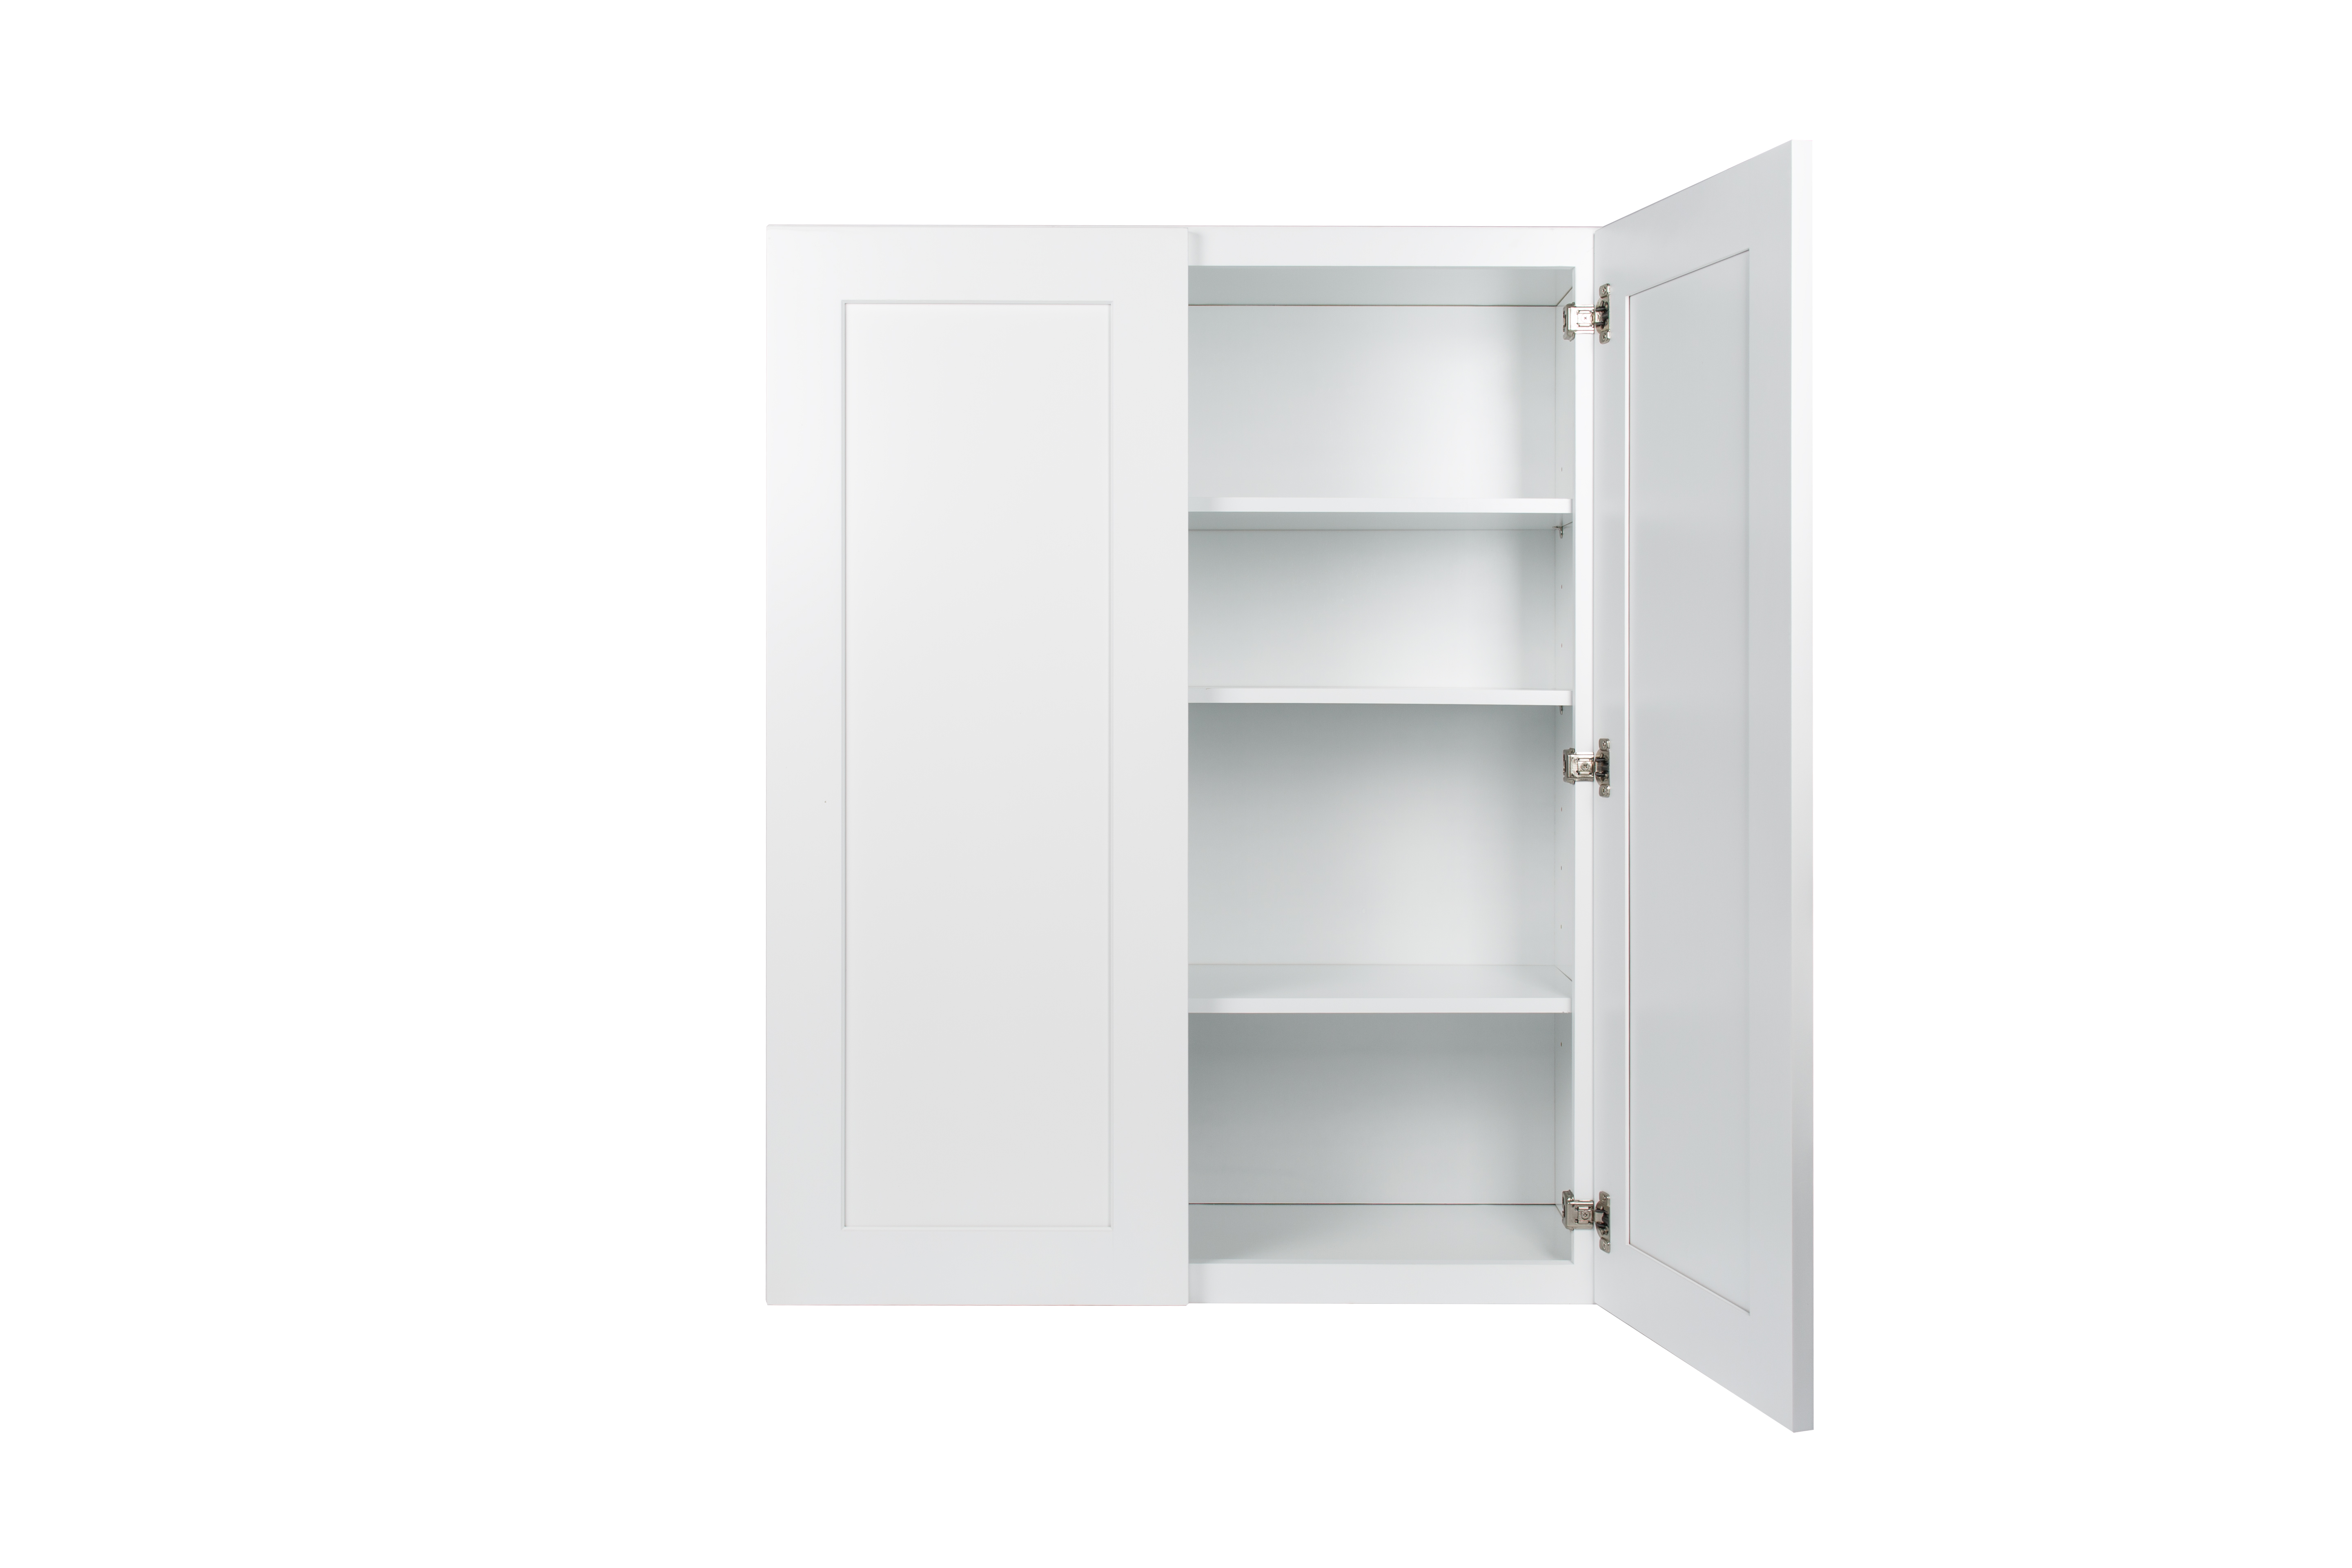 Ready to Assemble 30Wx18Hx12D in. Shaker WALL WINE RACK in White